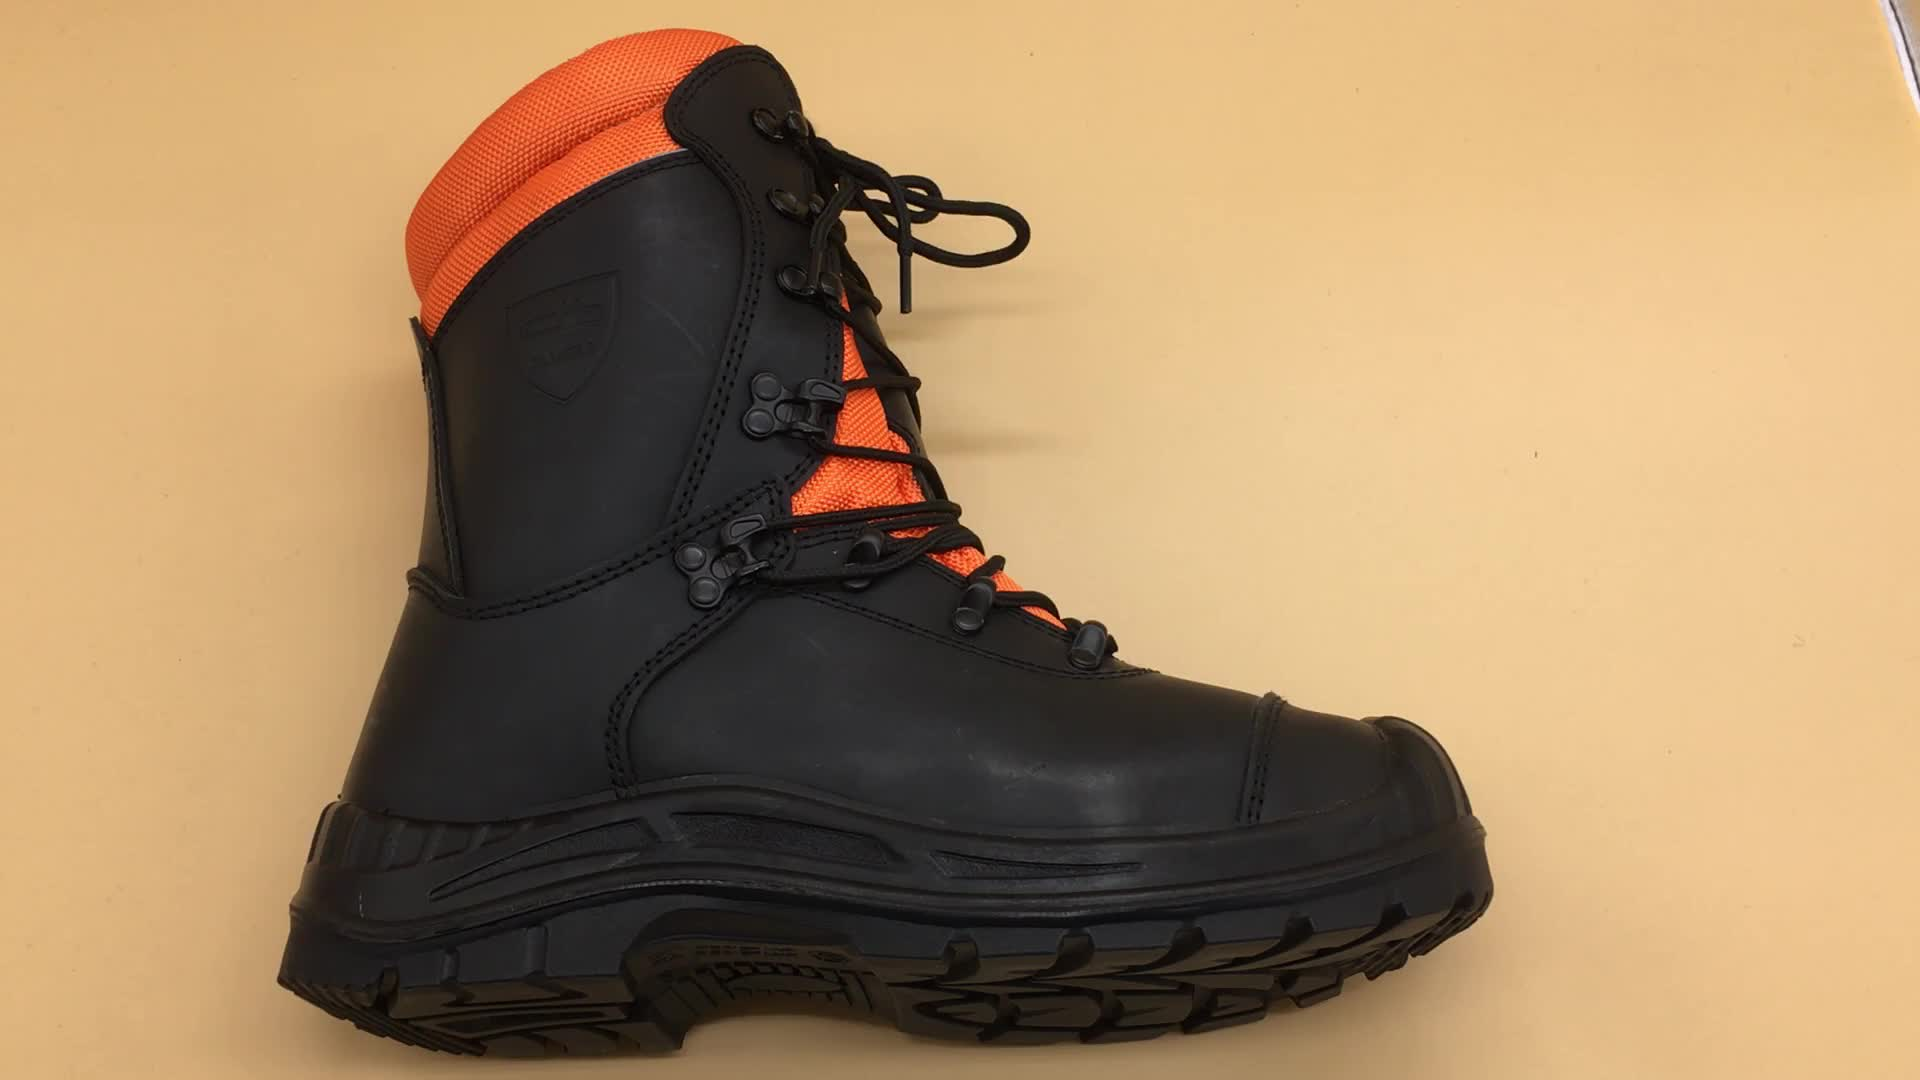 Chainsaw safety boots forestry safety boots CE EN 17249 chainsaw boots